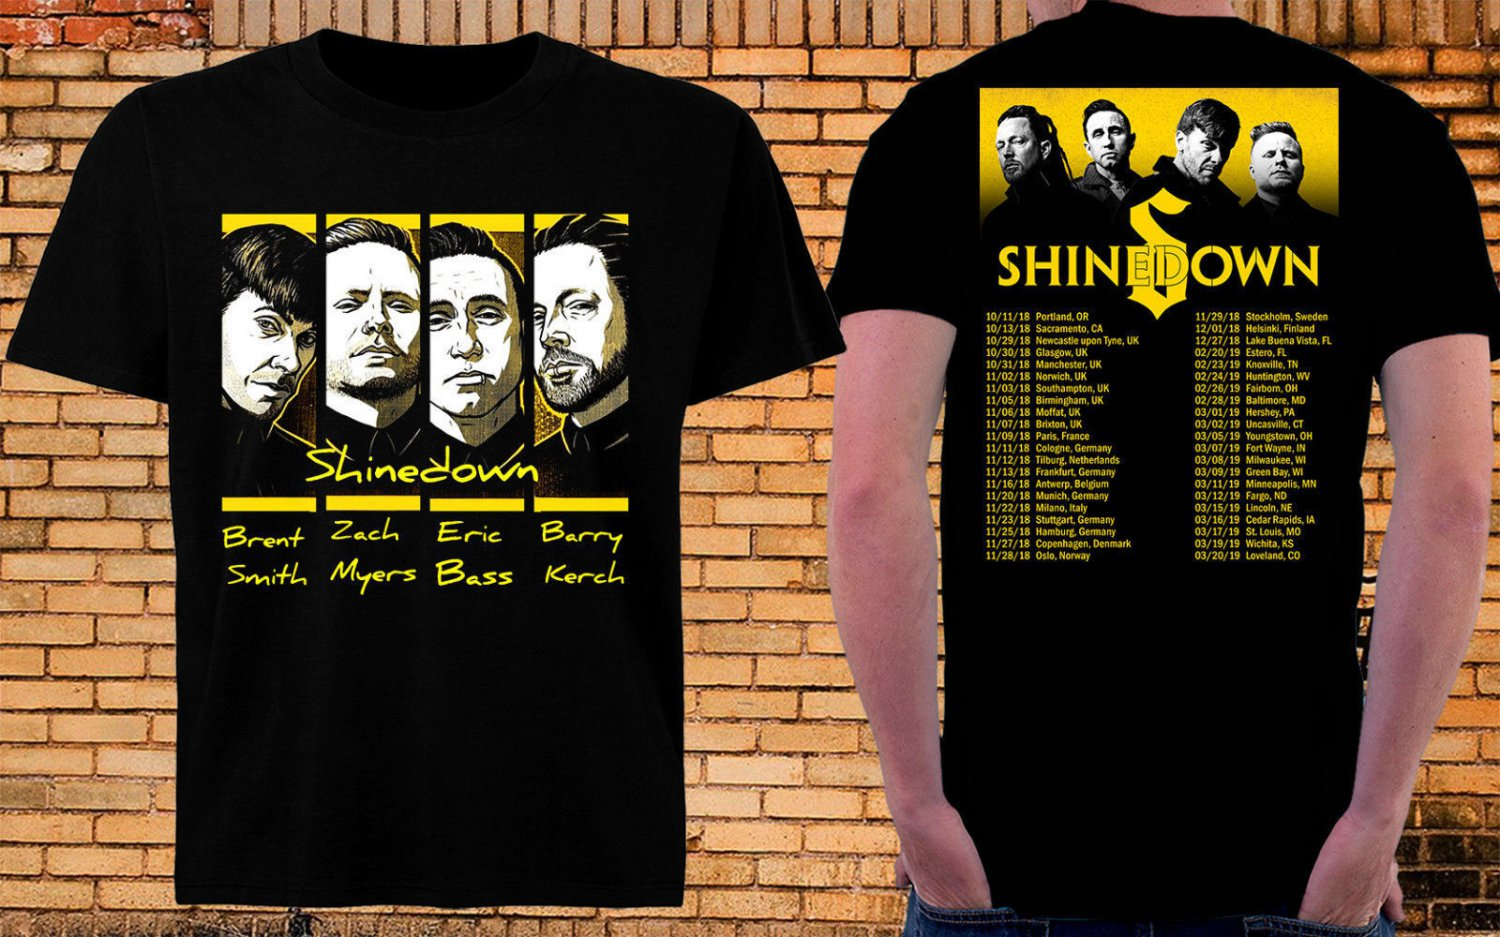 HOT NEW ATTENTION TOUR 2019 SHINEDOWN Tshirt Black Color 100%  T-Shirts S-2XL